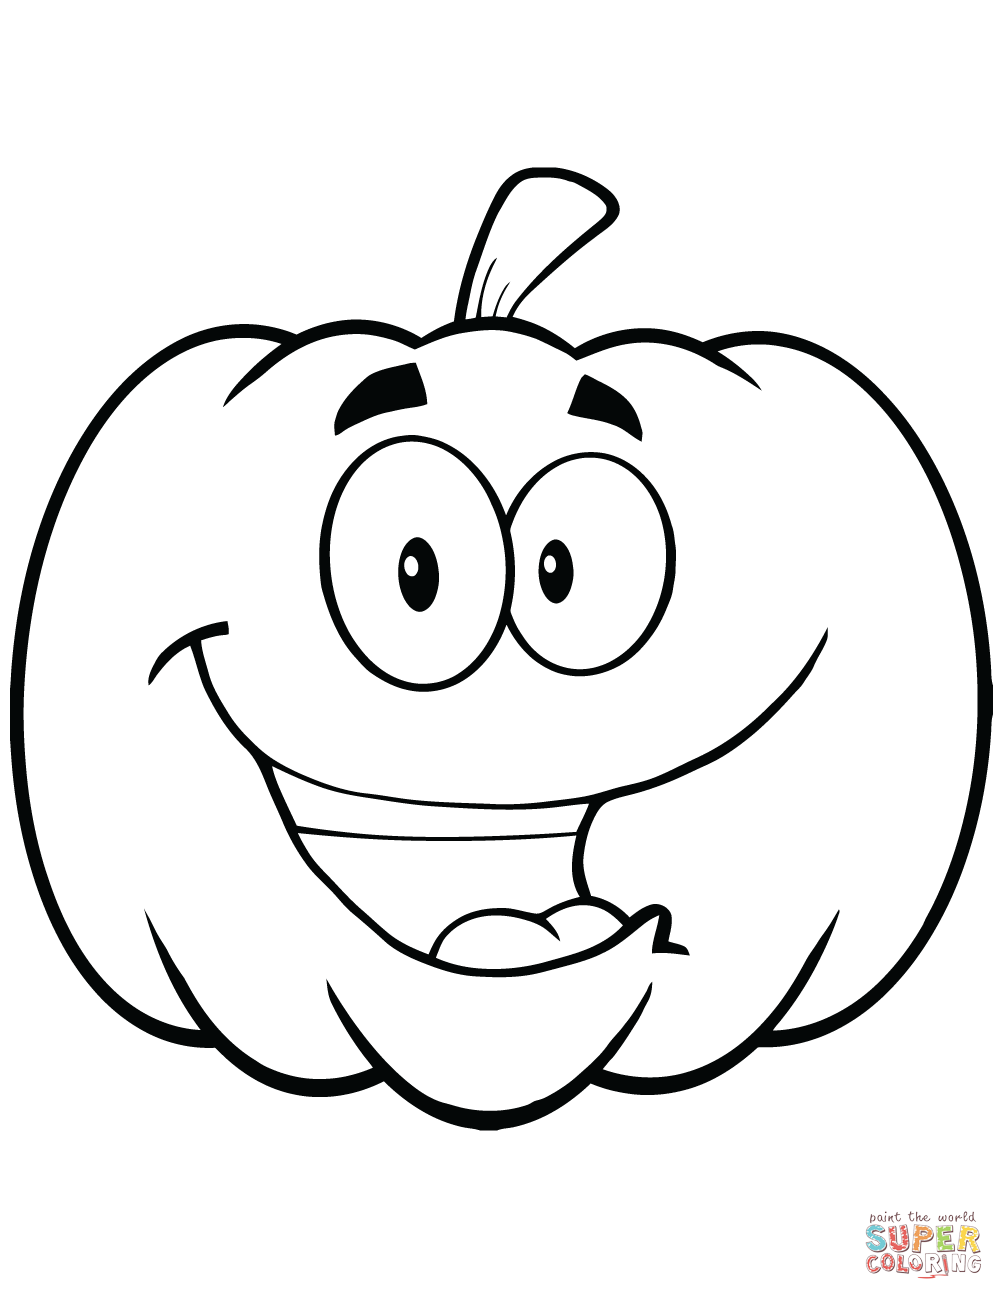 pumpkin colouring pictures pumpkin with leaves coloring page free printable colouring pictures pumpkin